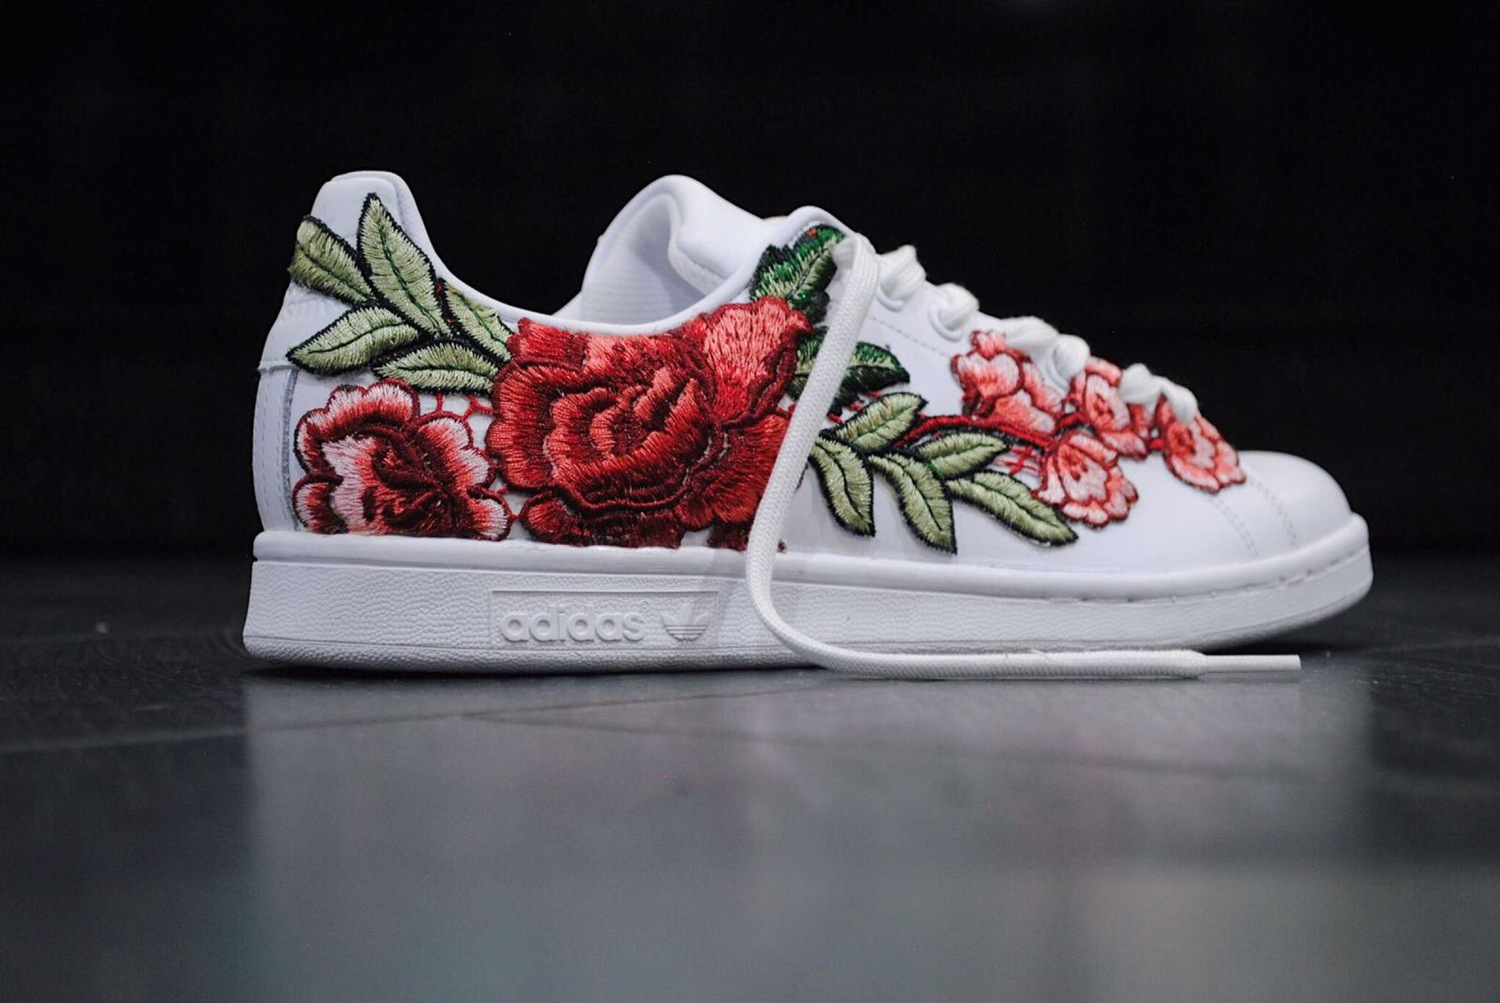 FRE Customs are Releasing Adidas Stan Smith  Flowerbombs  - The Cut 82b0d28d4